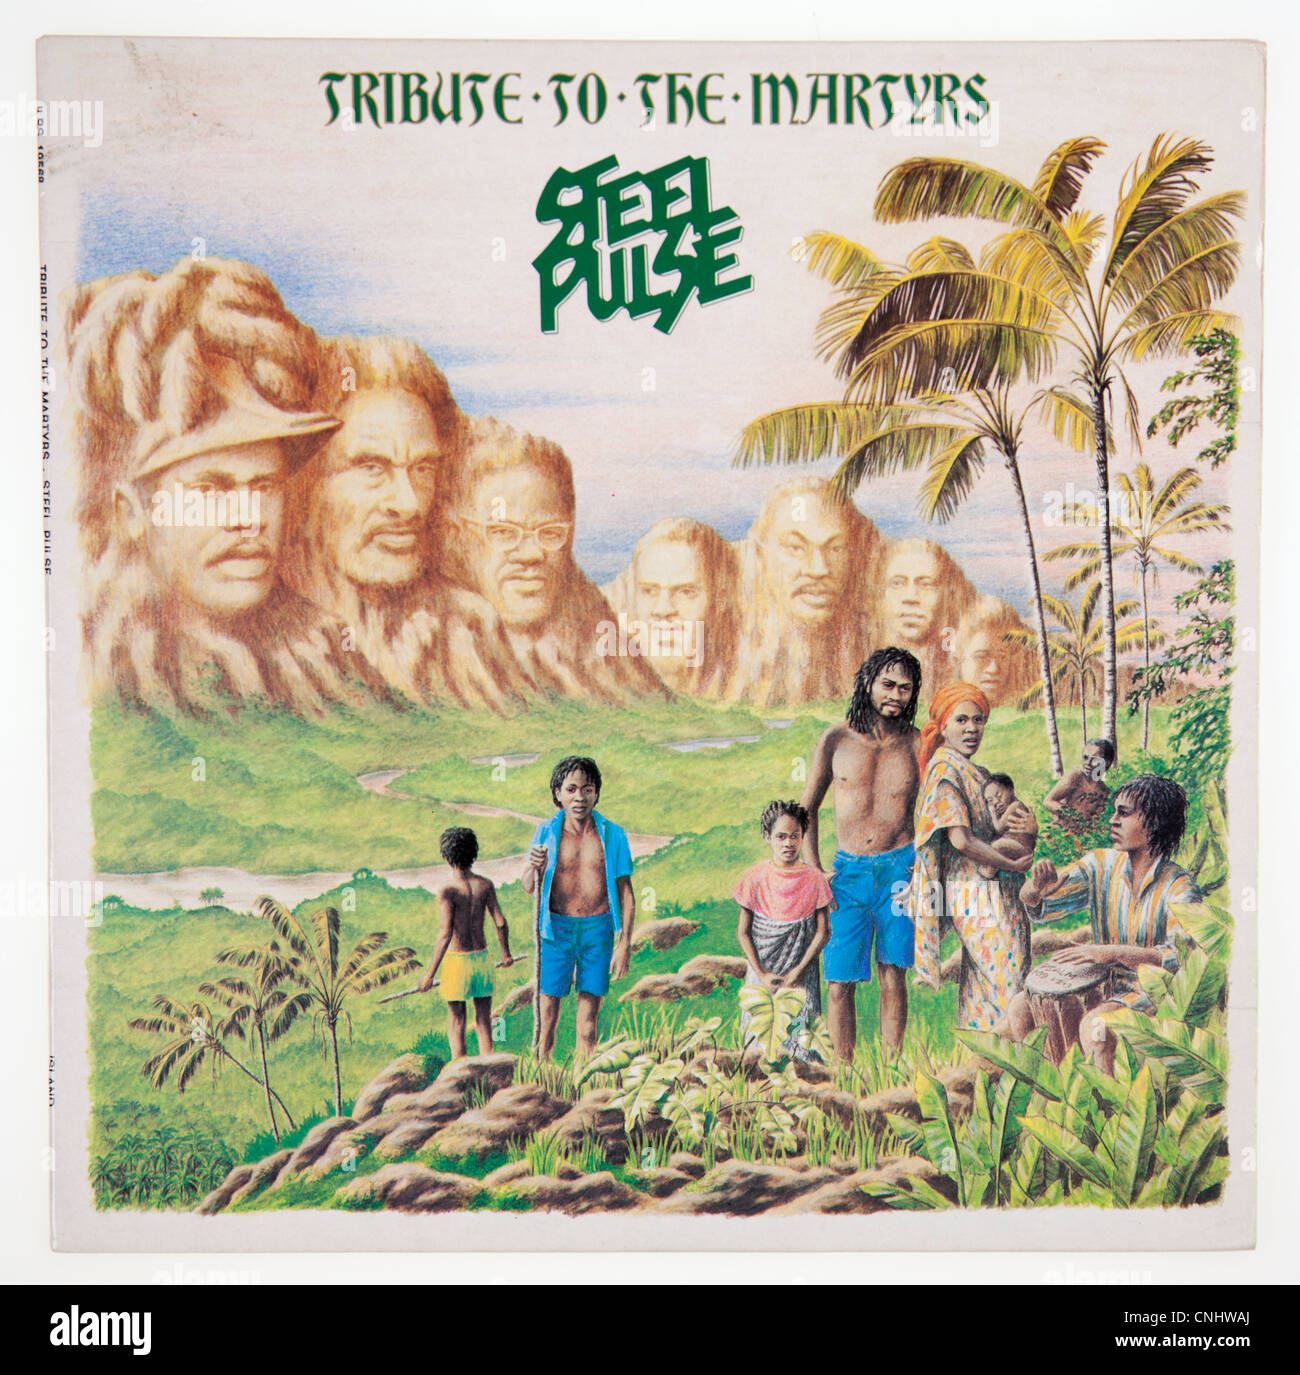 Cover of vinyl album 'Tribute to the Martyrs' by Steel Pulse released 1979 on Islands Records - Stock Image